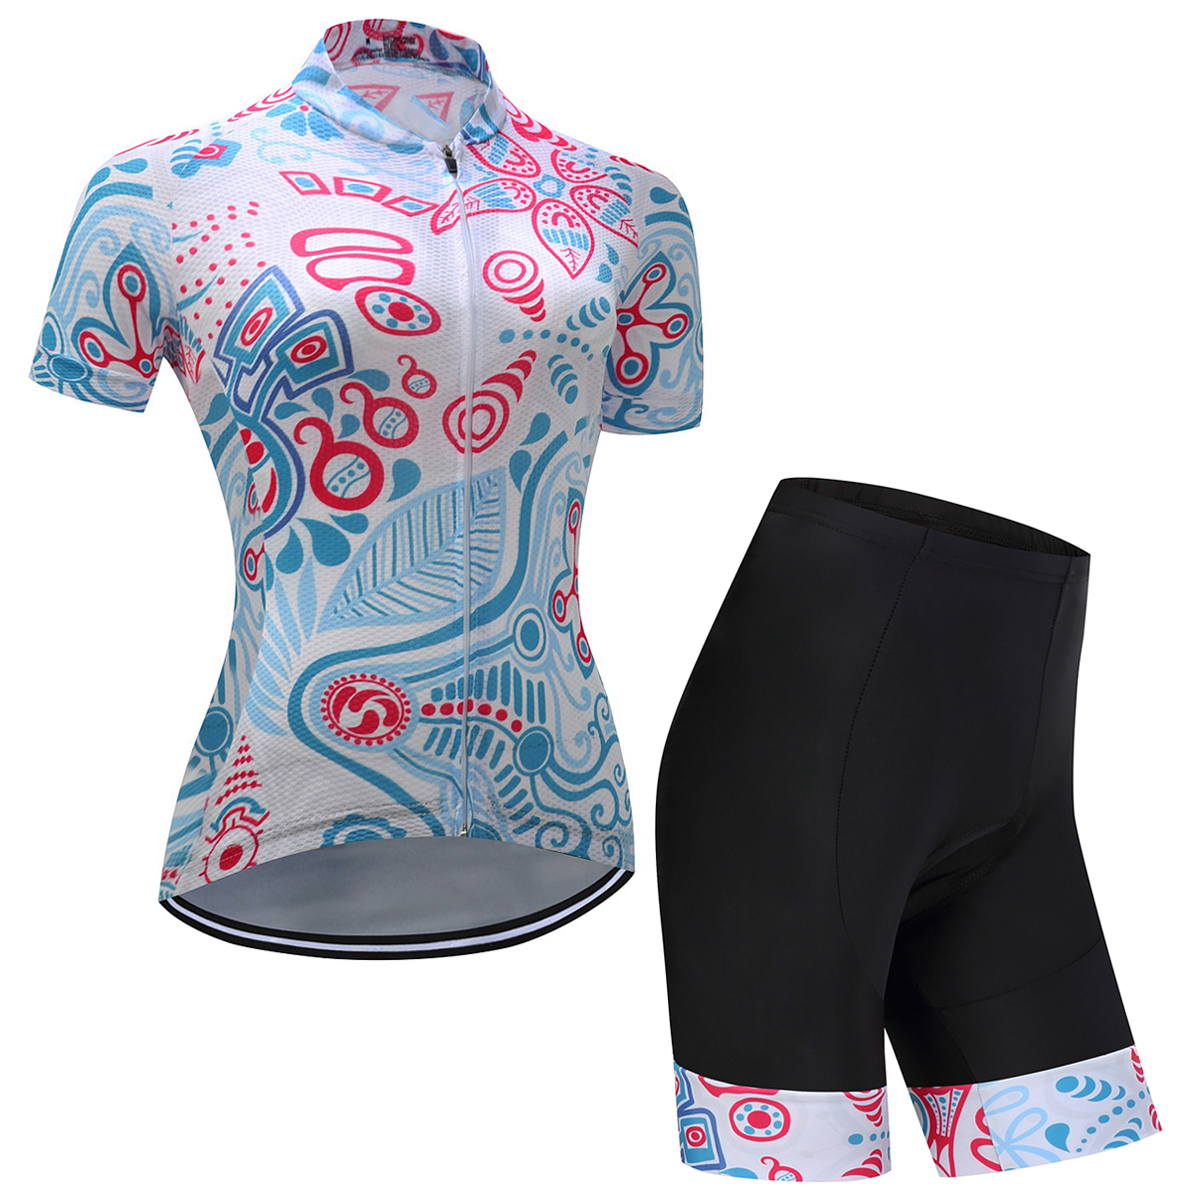 Hot Selling EU Brand SUSHAN Women Cycling Jerseys 5D Gel Pad Pro Team Bike Clothing Maillot Ciclismo Ropa Female Bicycle Cloth 176 hot cycling jerseys magnolia flowers hot cycling jersey 2017s anti pilling female adequate quality sleeve cycling clothing f